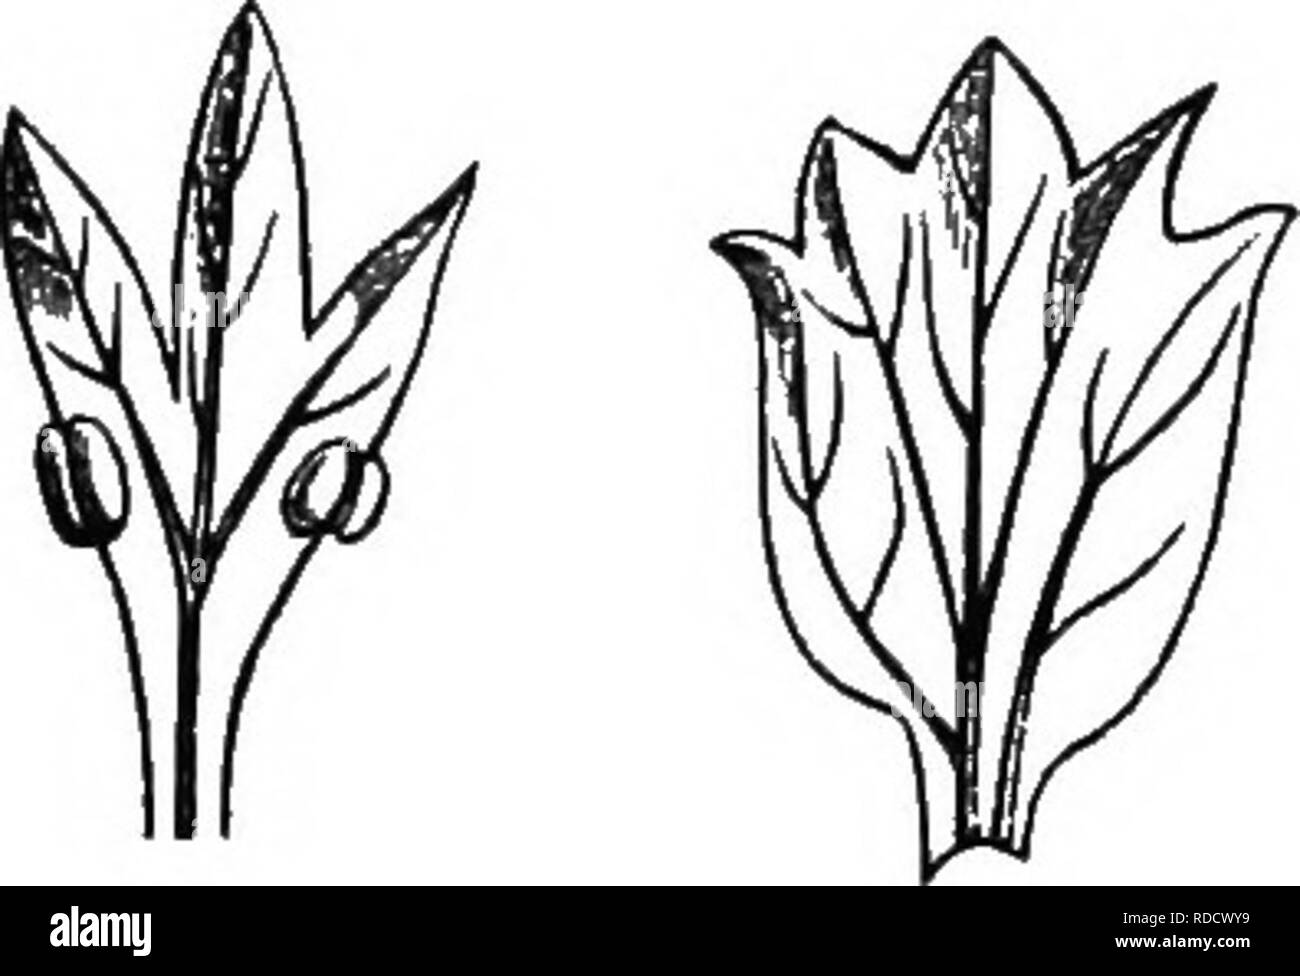 """. The origin of floral structures : through insect and other agencies. Plants; Flowers; Flowers. 302 THE STRUCTURE OF FLOWERS. (Fig. 83, c). A curious foliaceous modification is described by Miiller and figured by Masters,* in which the metamor-. Fig. 83.—o, Foliaceous stamen, and h, petal of the Alpine Strawberry (after Le Maout and Decaiene); c, stamen ol """" Green Rose."""" phosed stamen had the appearance of two leaves united by their mid-ribs. It occurred in JatropTia Pohliana (Fig. 84). This will be alluded to again, as pecu- liarly significant. Phtllodt op the Carpels and Ovules.—T - Stock Image"""